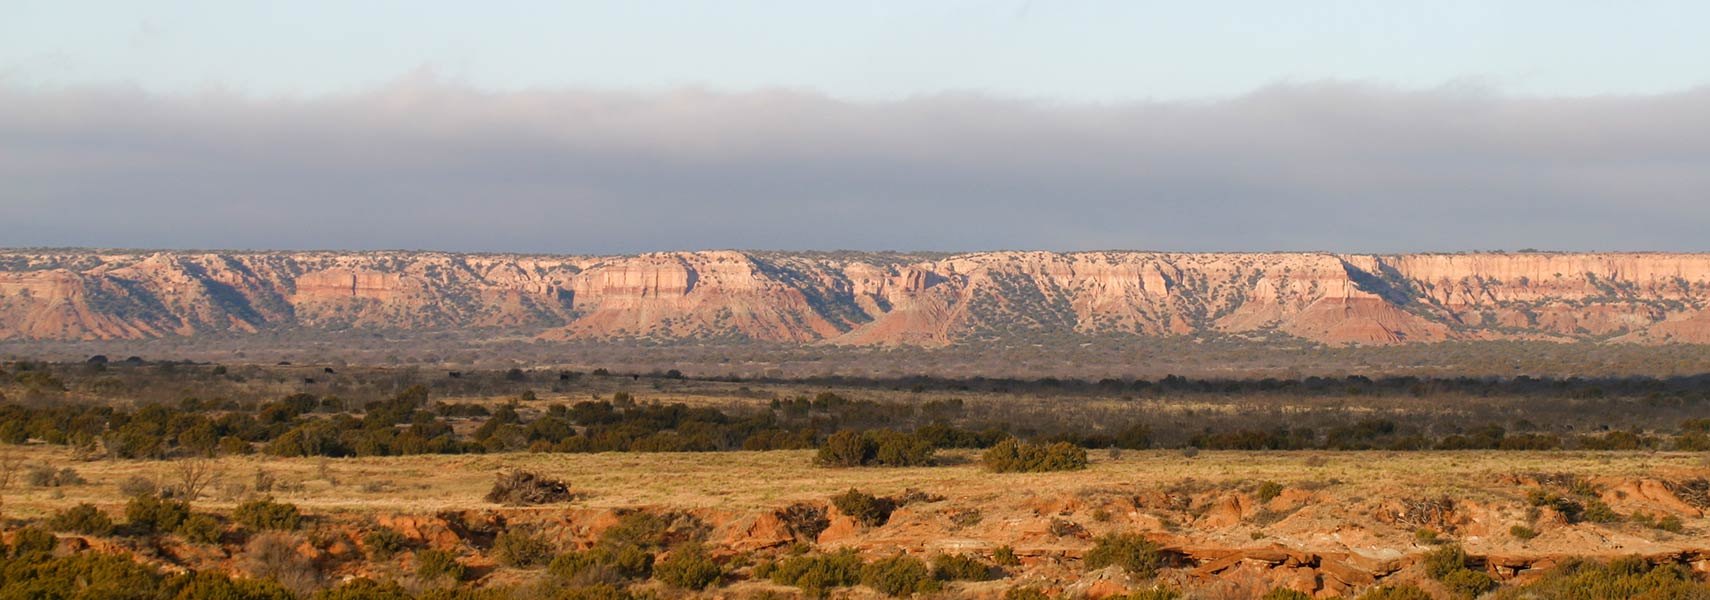 The Caprock Escarpment in Garza County, Texas